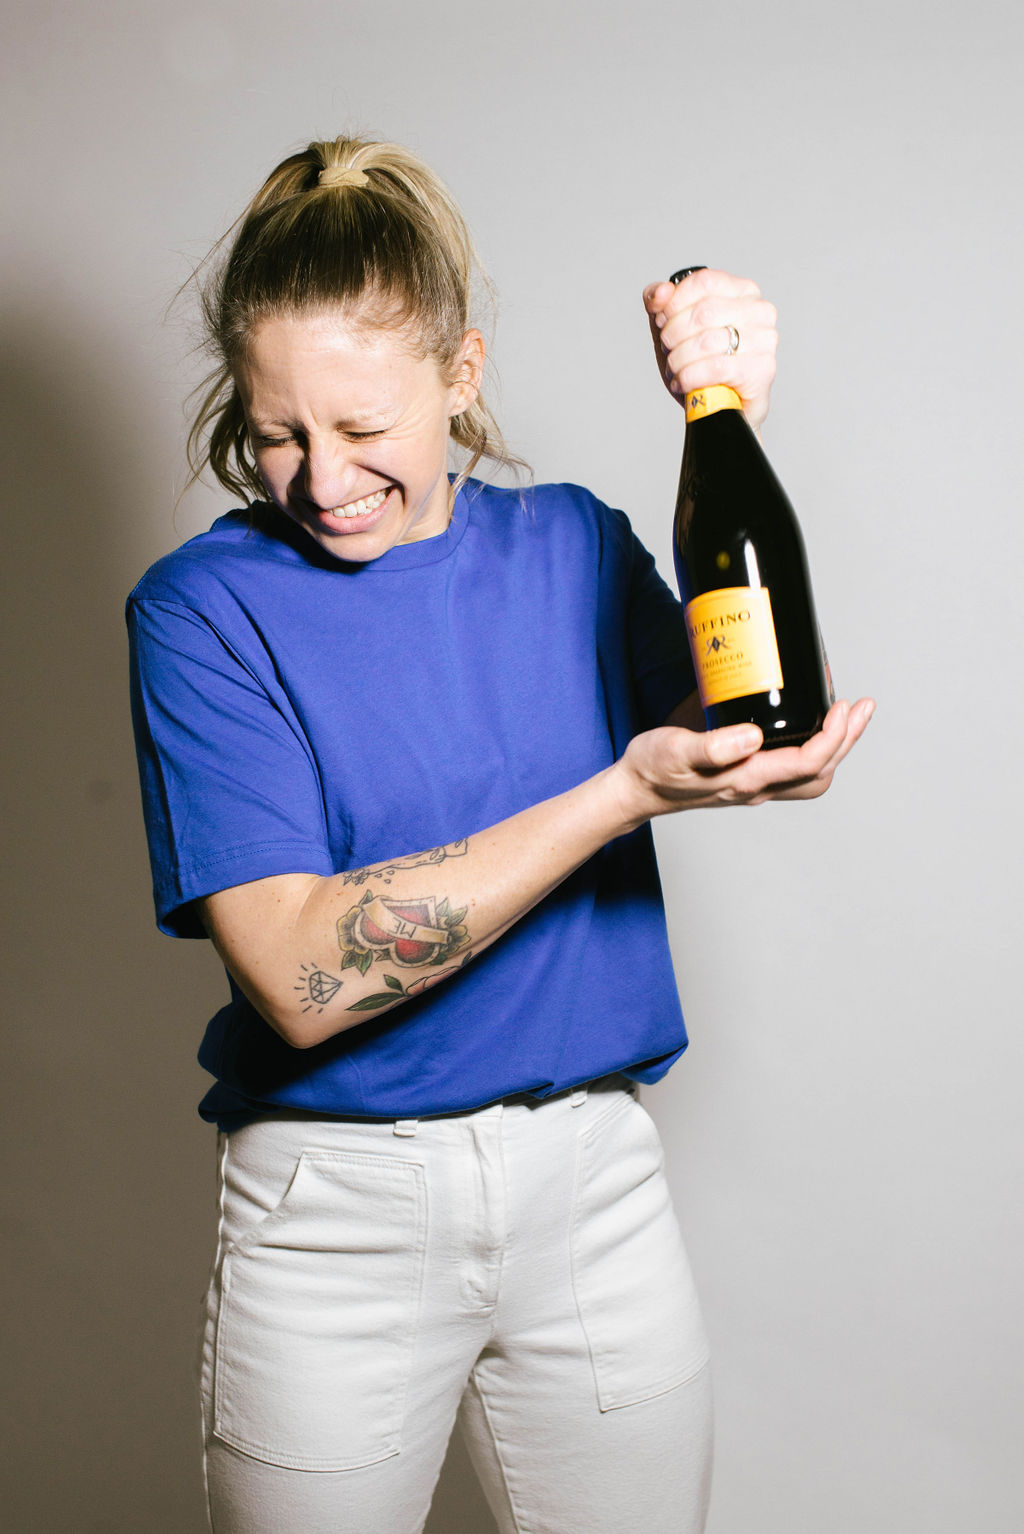 jess robson, communication coach, wearing white jeans and blue T holds a champagne bottle and makes a funny face while preparing to open it.